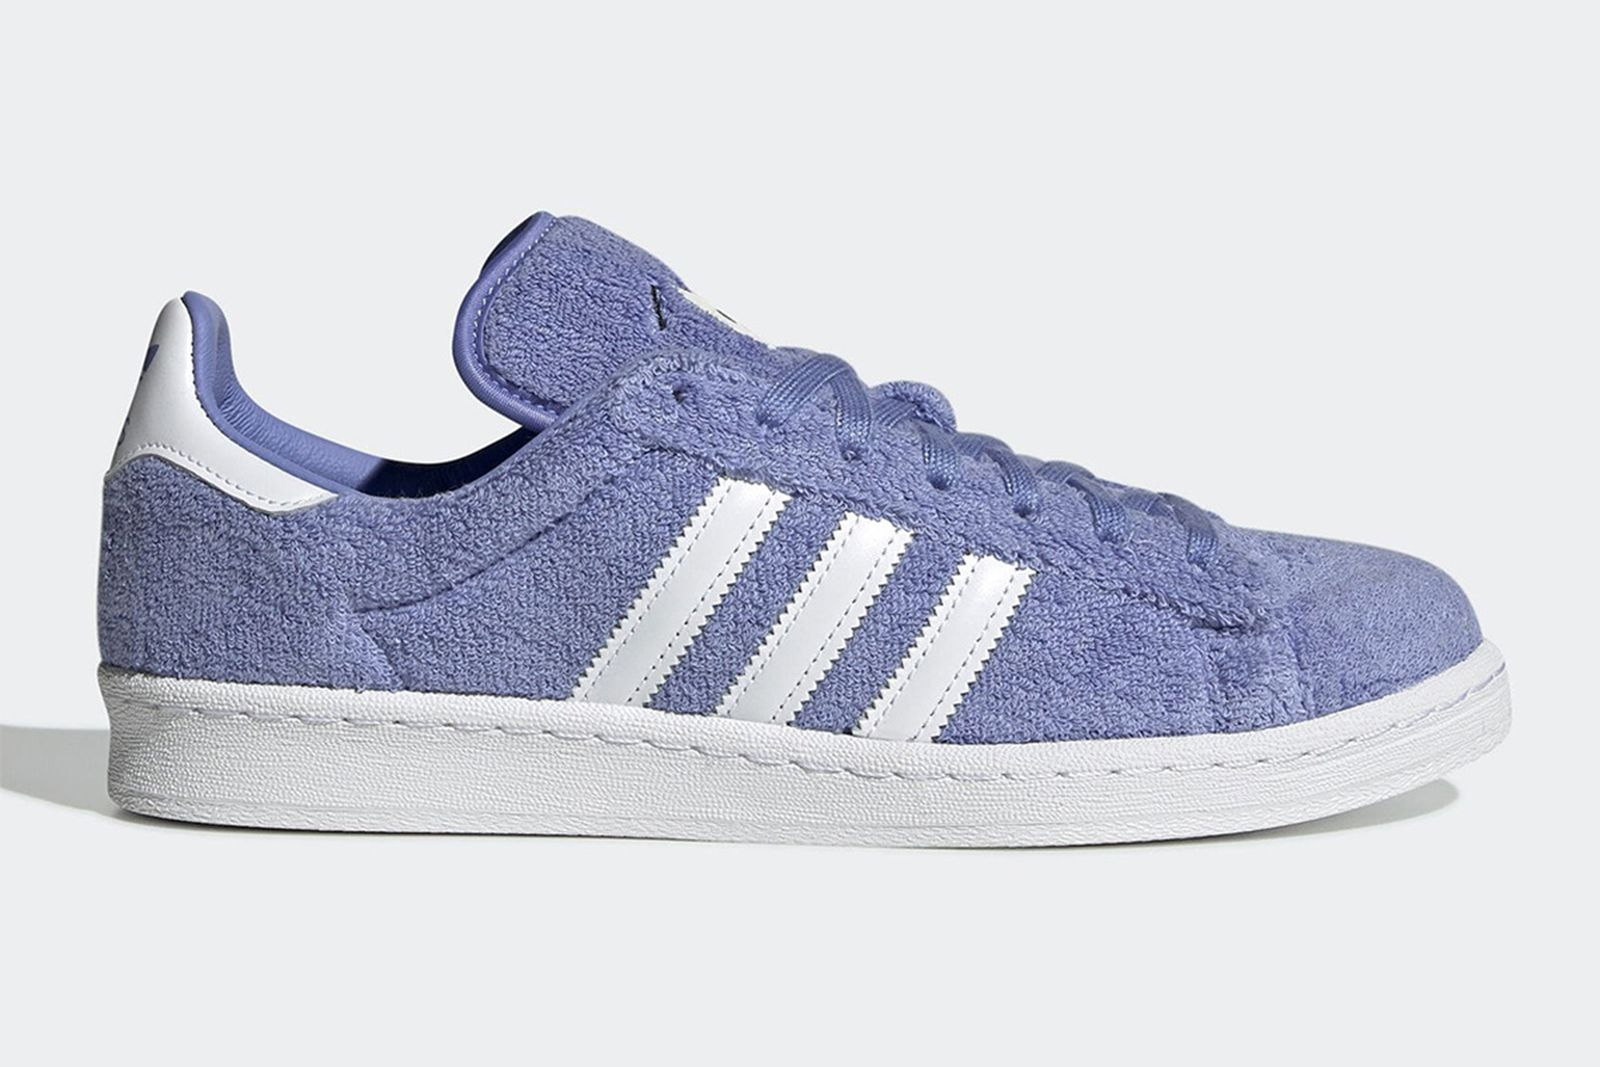 south-park-adidas-campus-80-towelie-release-date-price-02